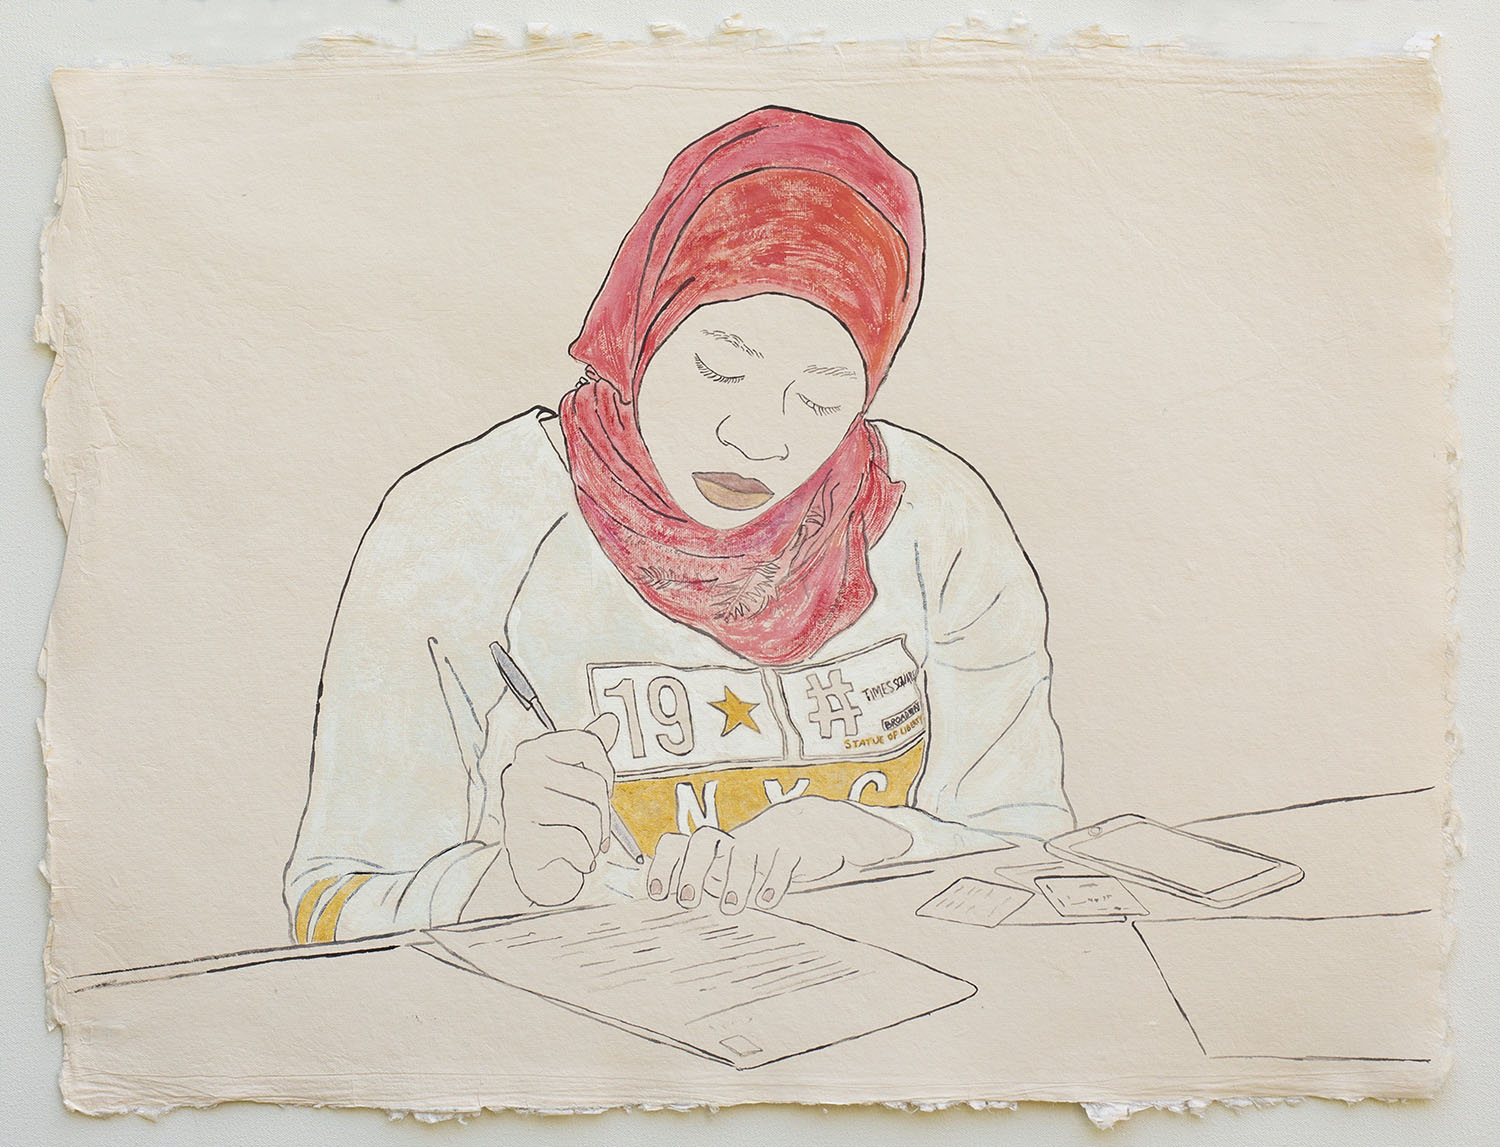 """Woman in NYC Shirt, Applying for U.S. Citizenship  2019, ink, watercolor, gouache on handmade paper made in India from recycled clothing, 19"""" x 25"""""""